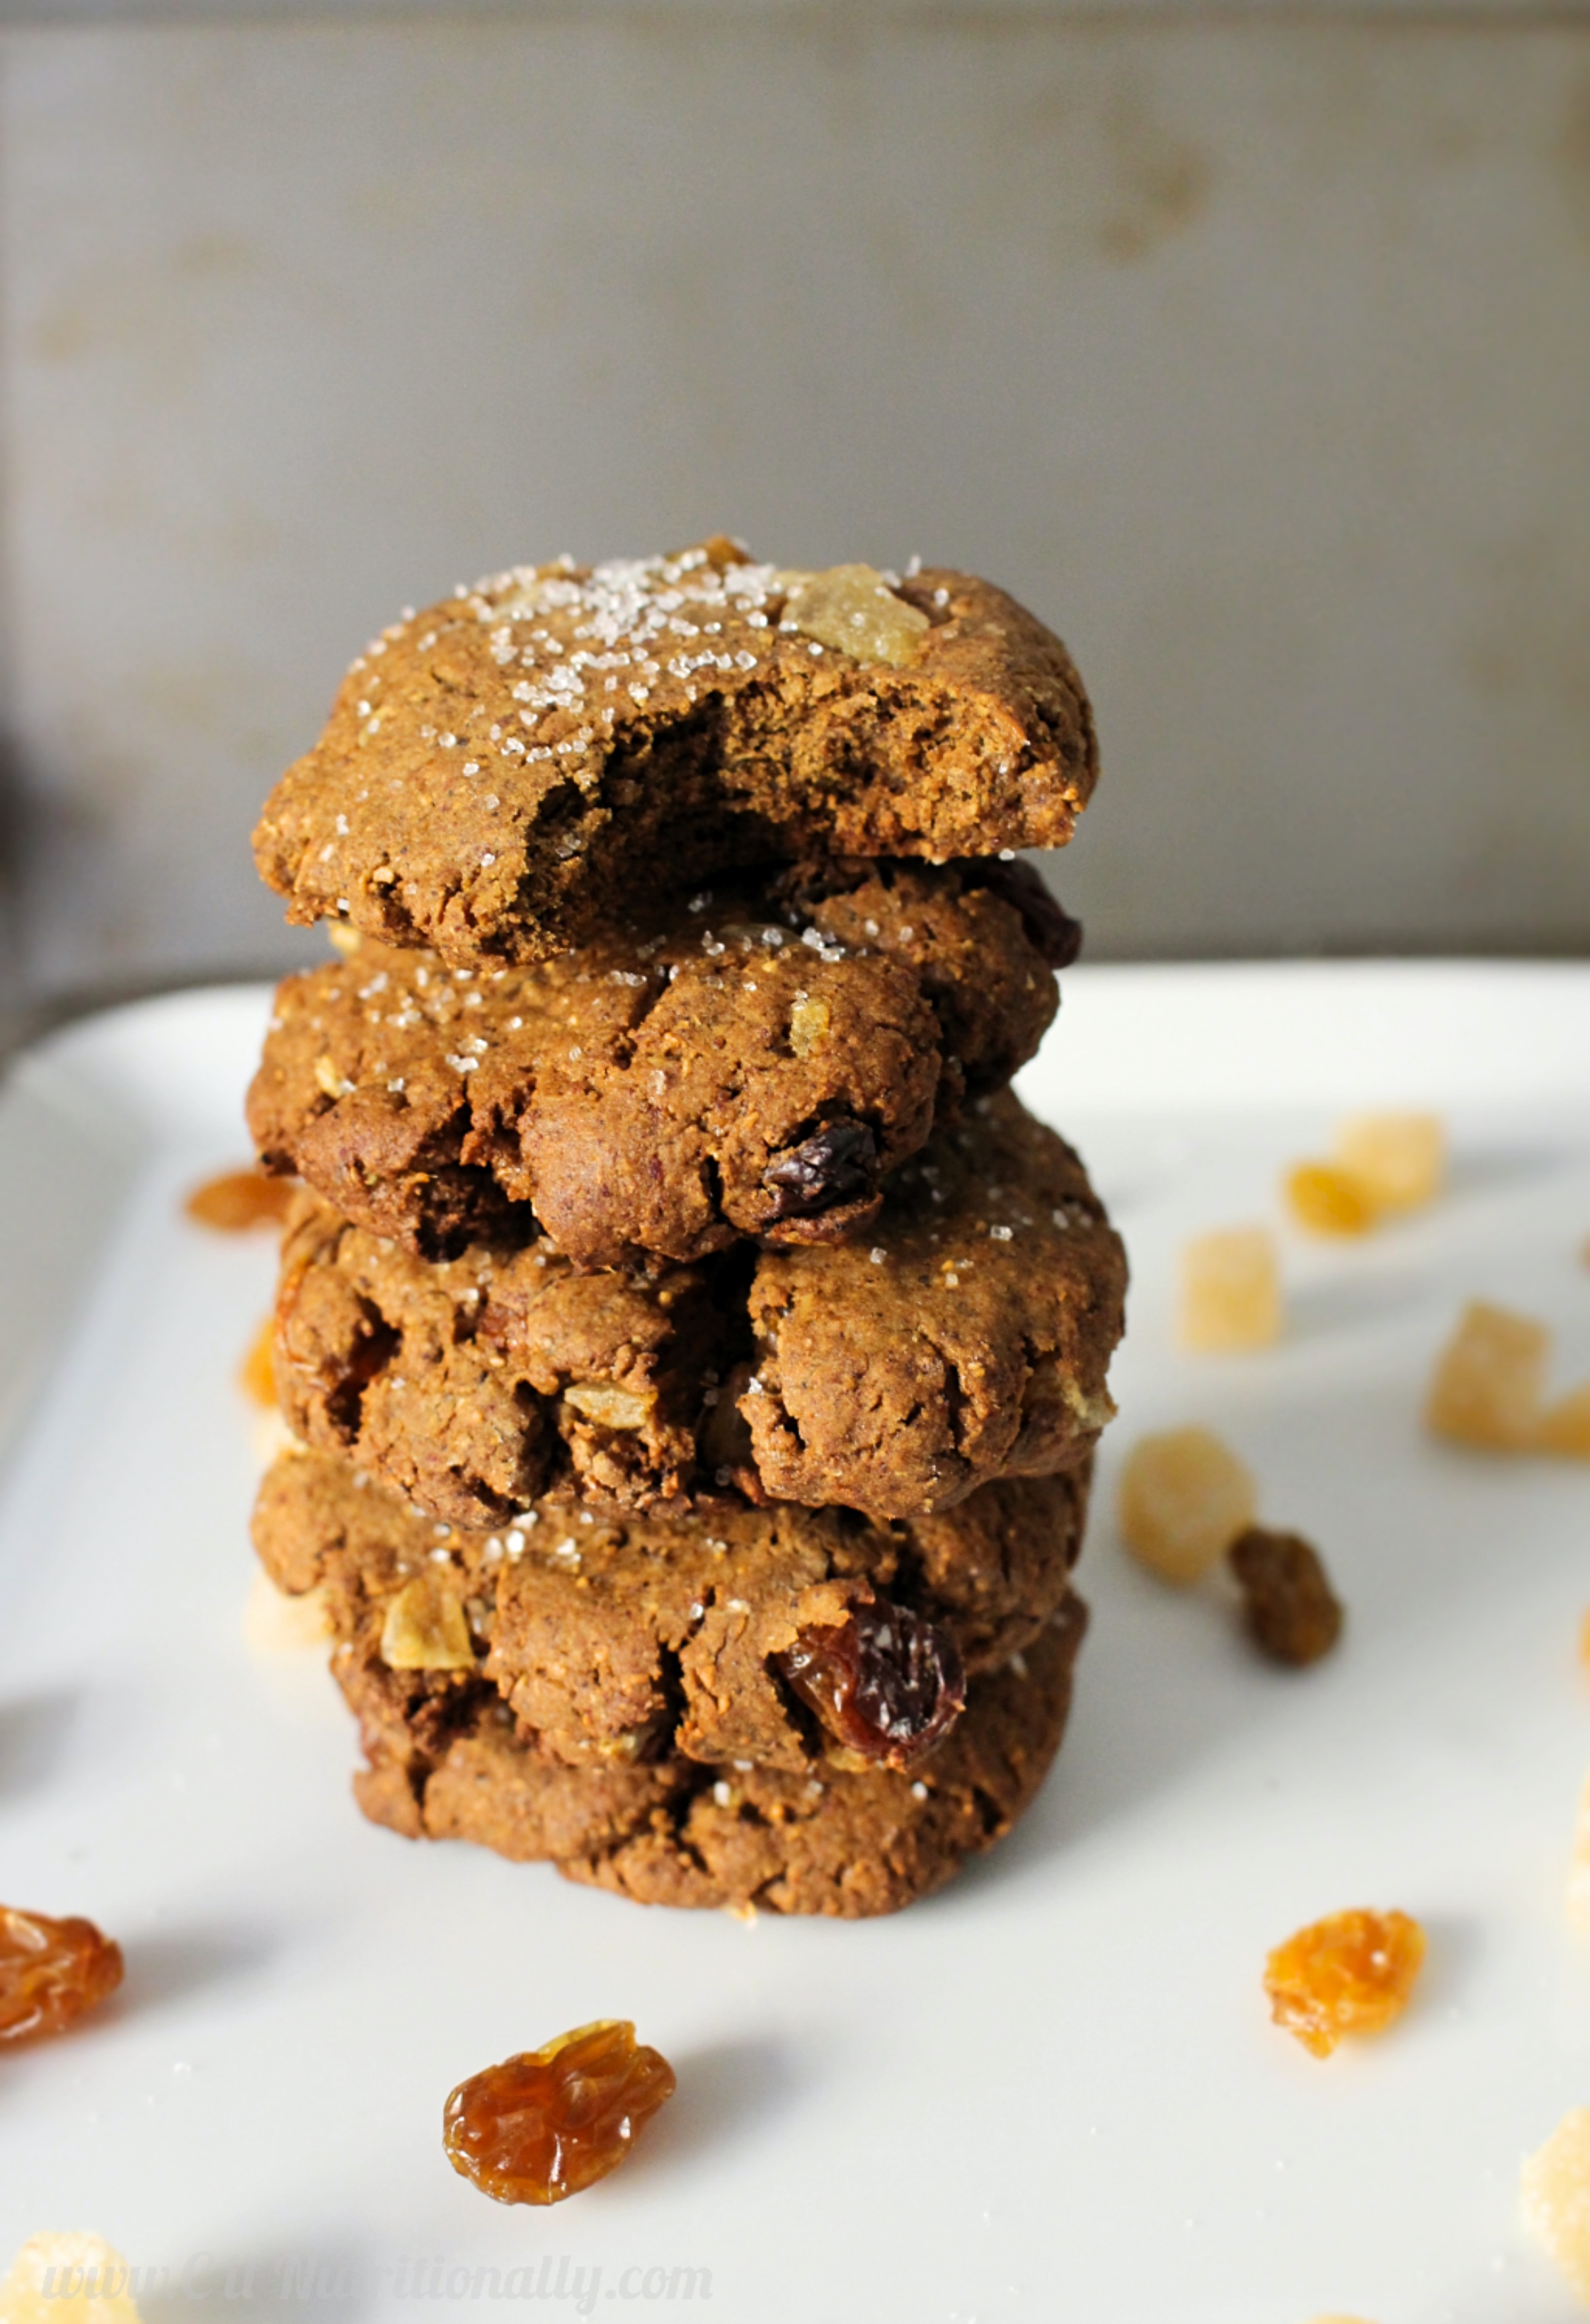 Spicy Ginger Cookies | C it Nutritionally #vegan option #nutfree # ...